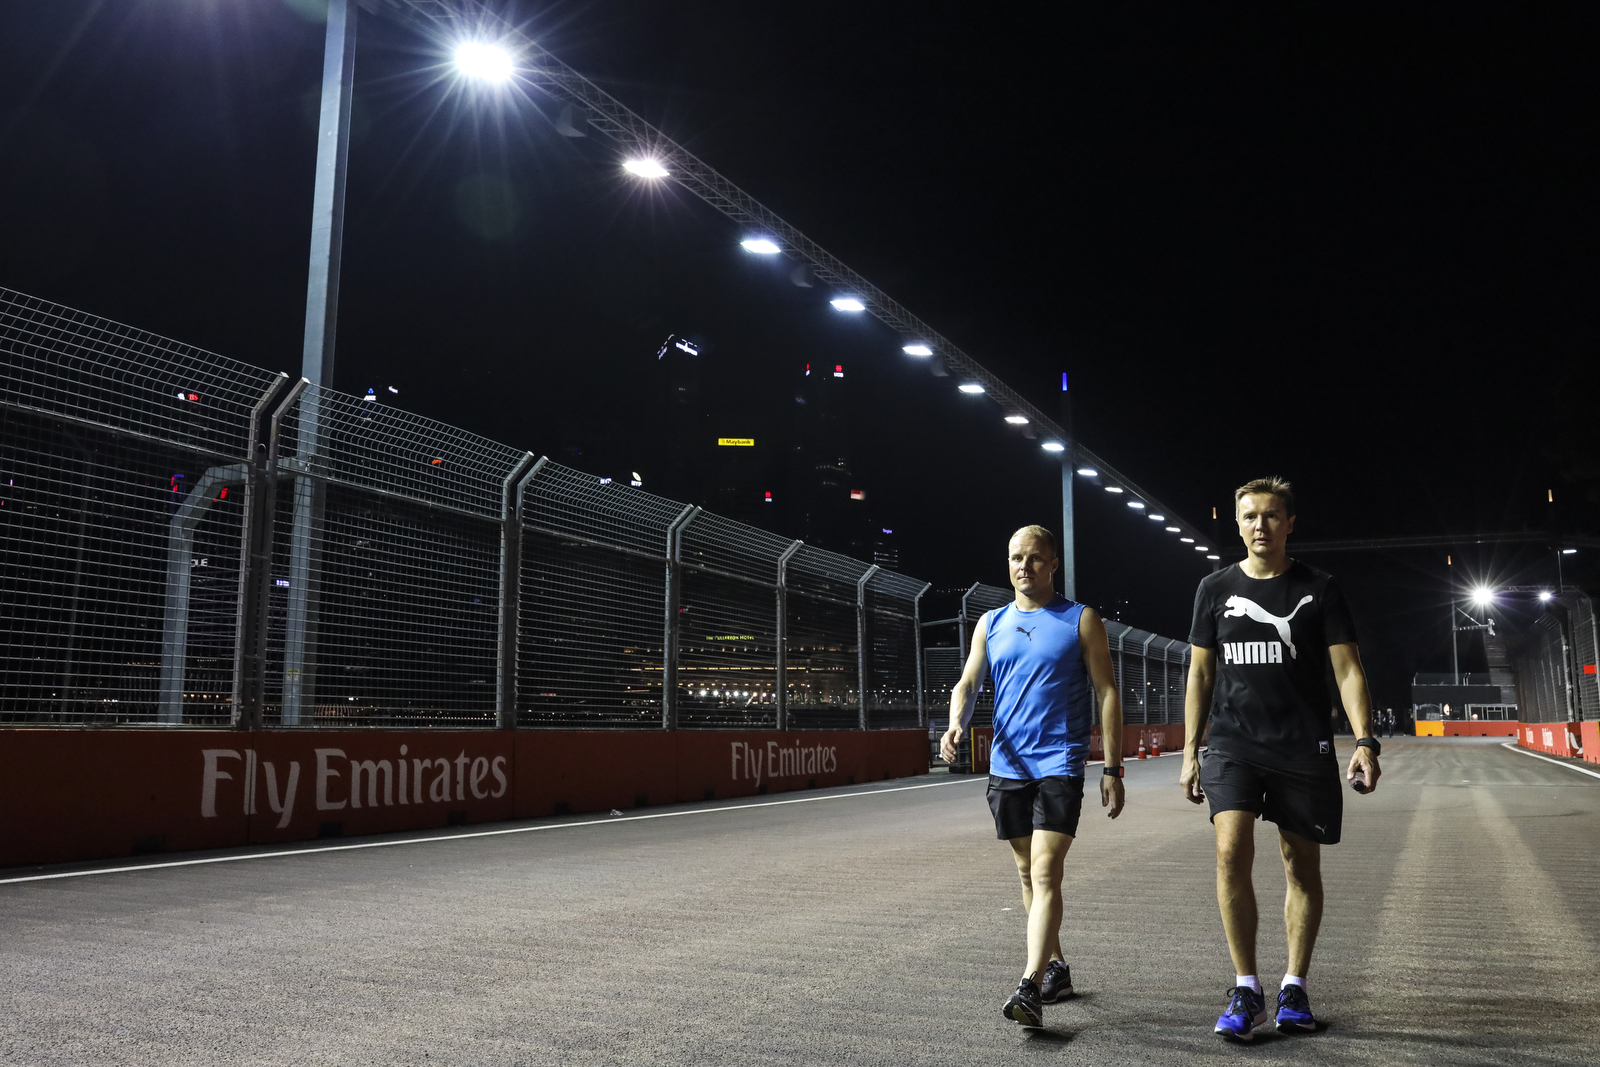 Mercedes driver Valtteri Bottas, left, of Finland walks the Marina Bay City Circuit track with his personal trainer, Antti Vierula, ahead of the Singapore Formula One Grand Prix in Singapore, Thursday, Sept. 13, 2018. (AP Photo/Yong Teck Lim)